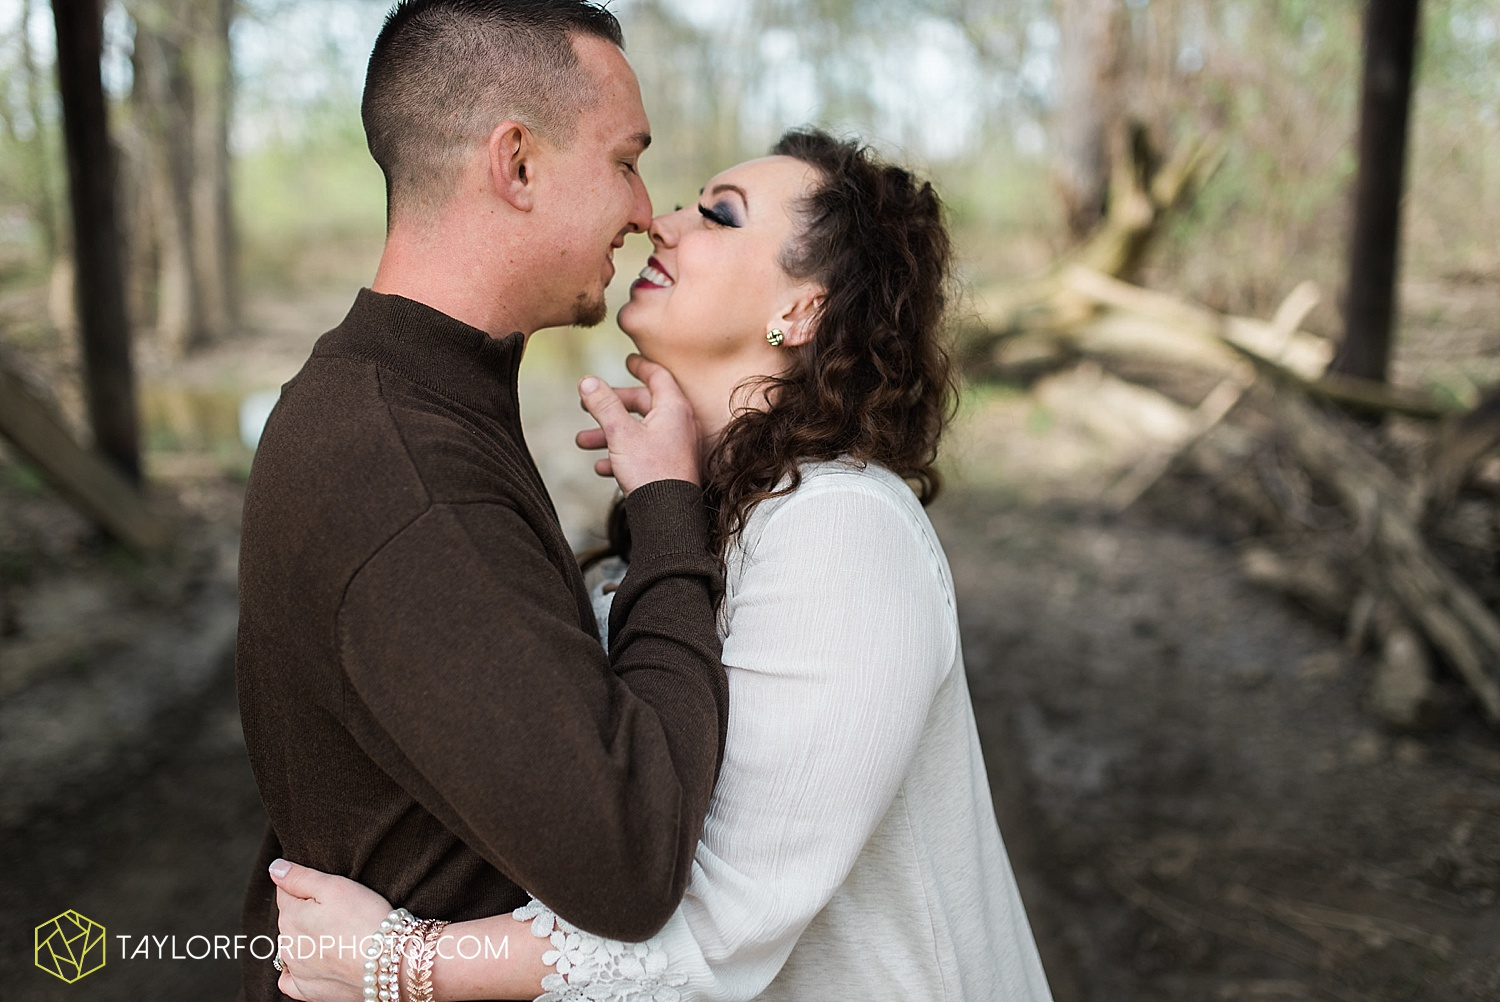 fort-wayne-indiana-engagement-wedding-photographer-taylor-ford-photography_1530.jpg